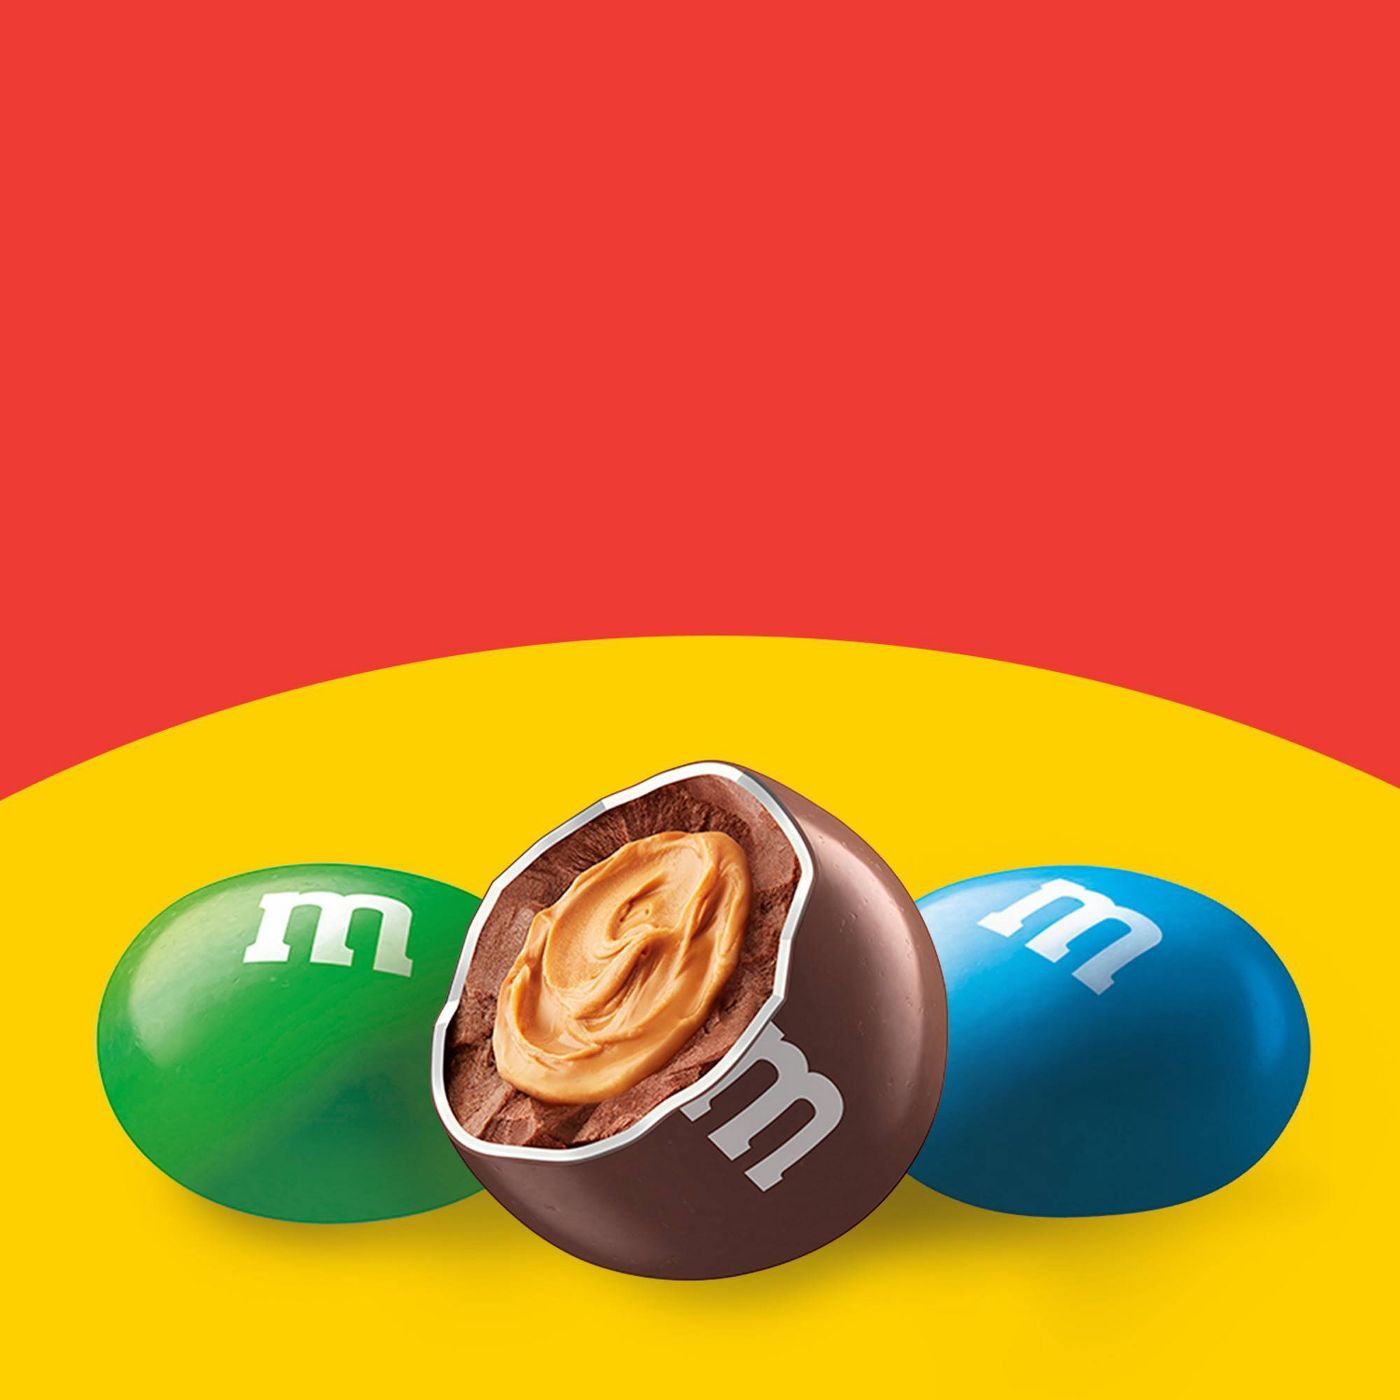 M&M's Peanut Butter Chocolate Candies, Family Size, 18.4oz